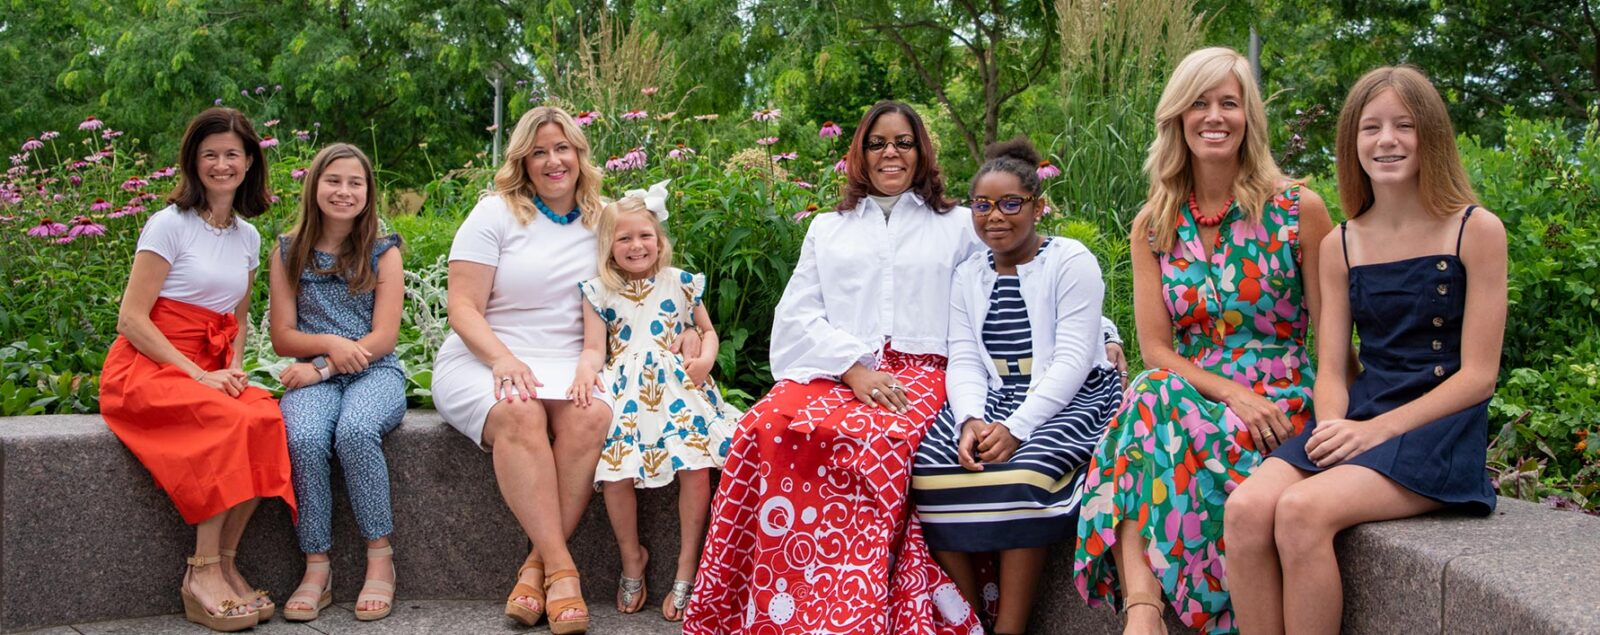 A group of women and their daughters at the Women's Committee Garden in Smale Riverfront Park